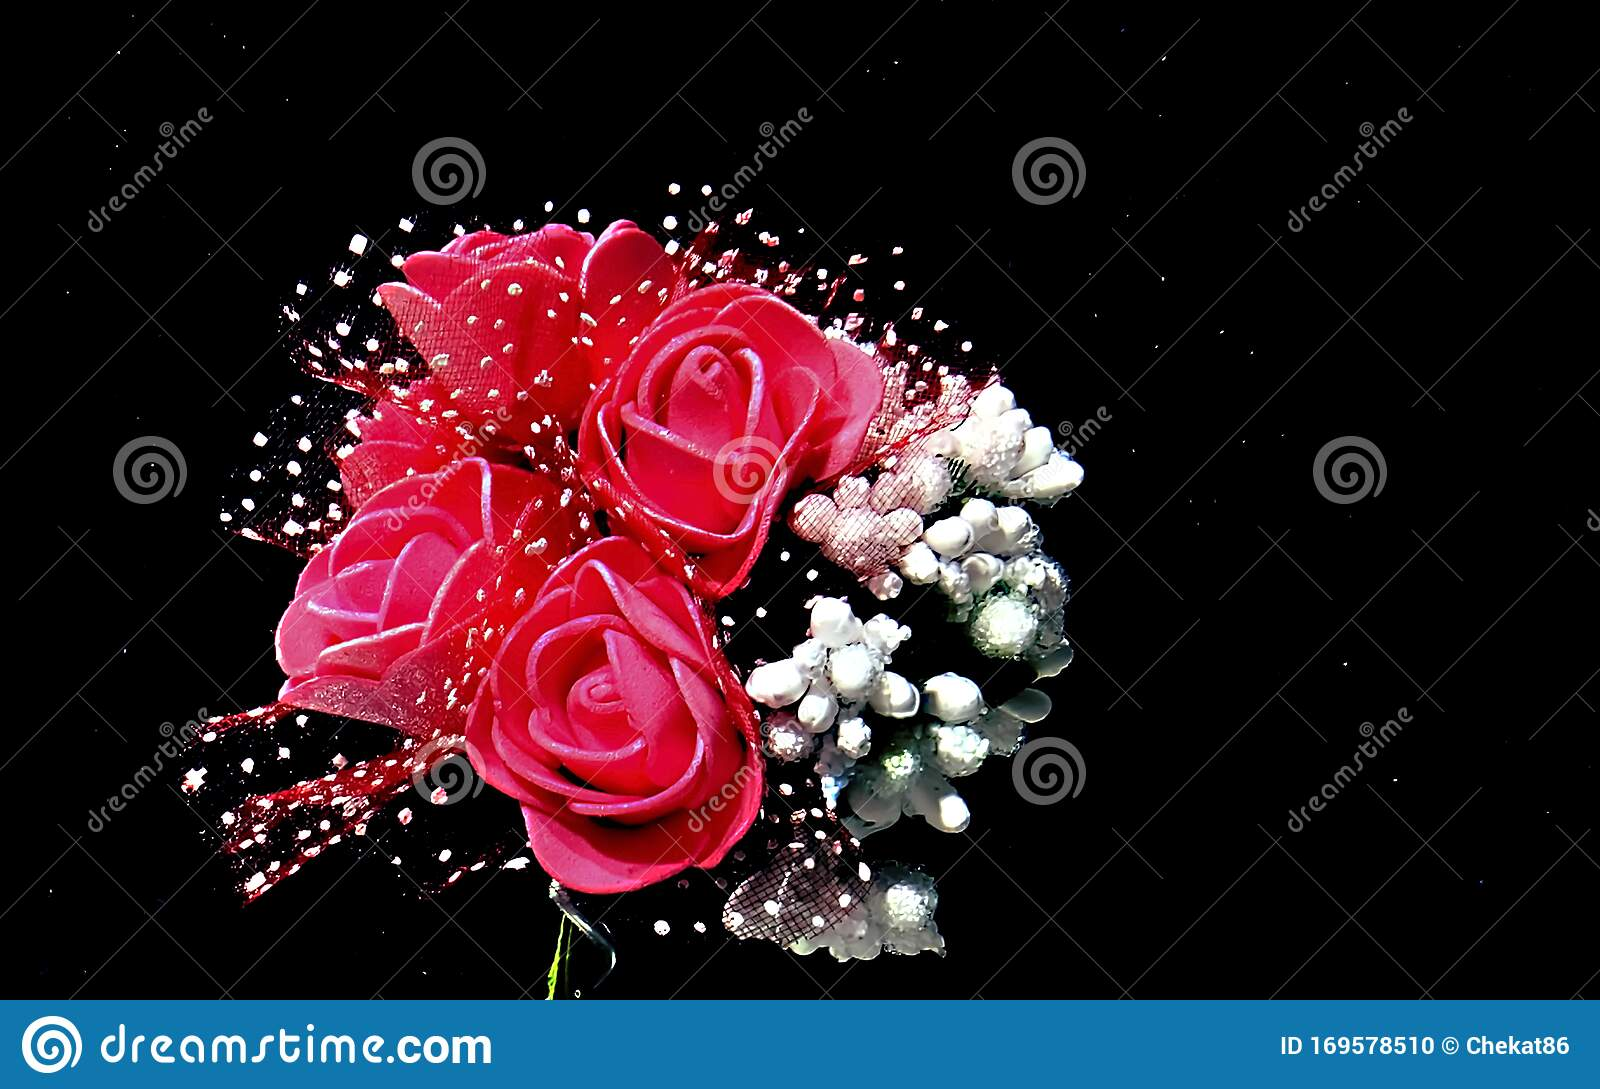 Beautiful Wedding Bouquet Of Red Roses And White Flowers On A Black Background Stock Photo Image Of March Beautiful 169578510